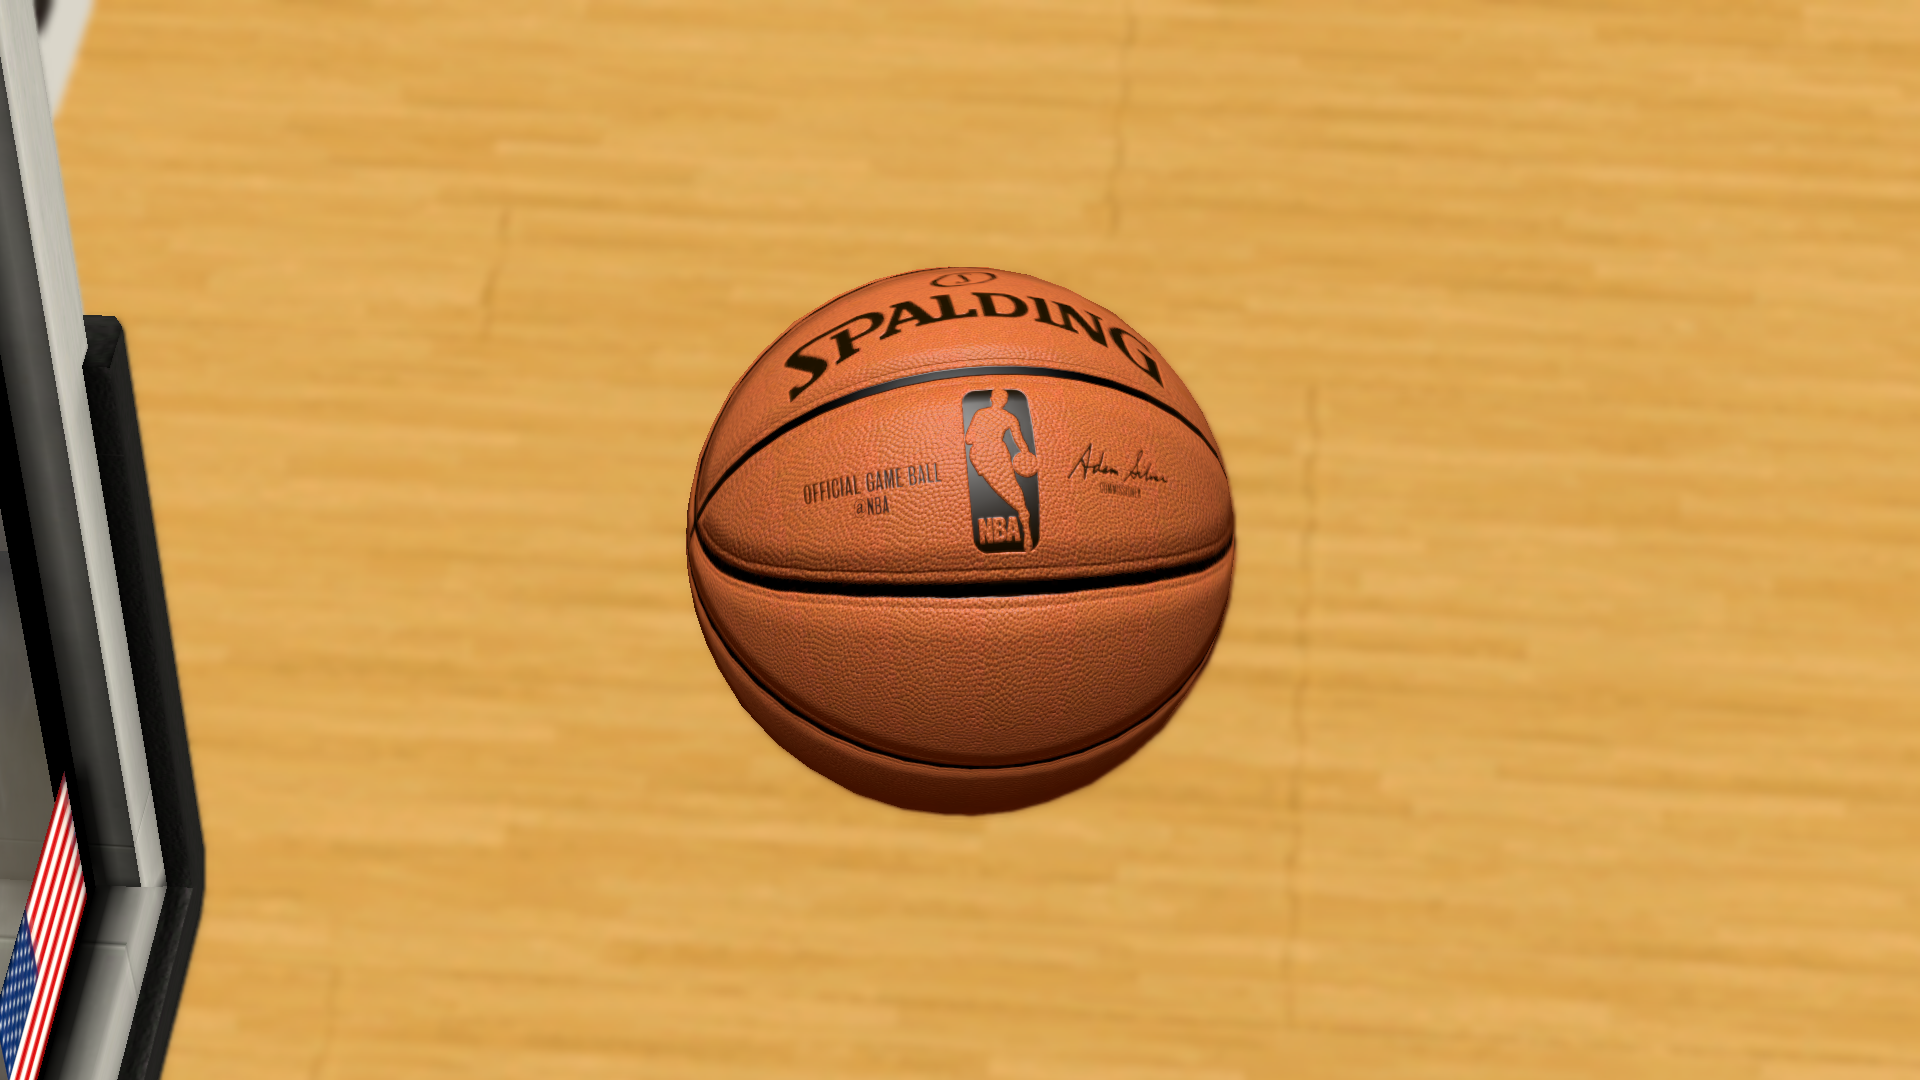 New NBA Ball (4x Resolution)